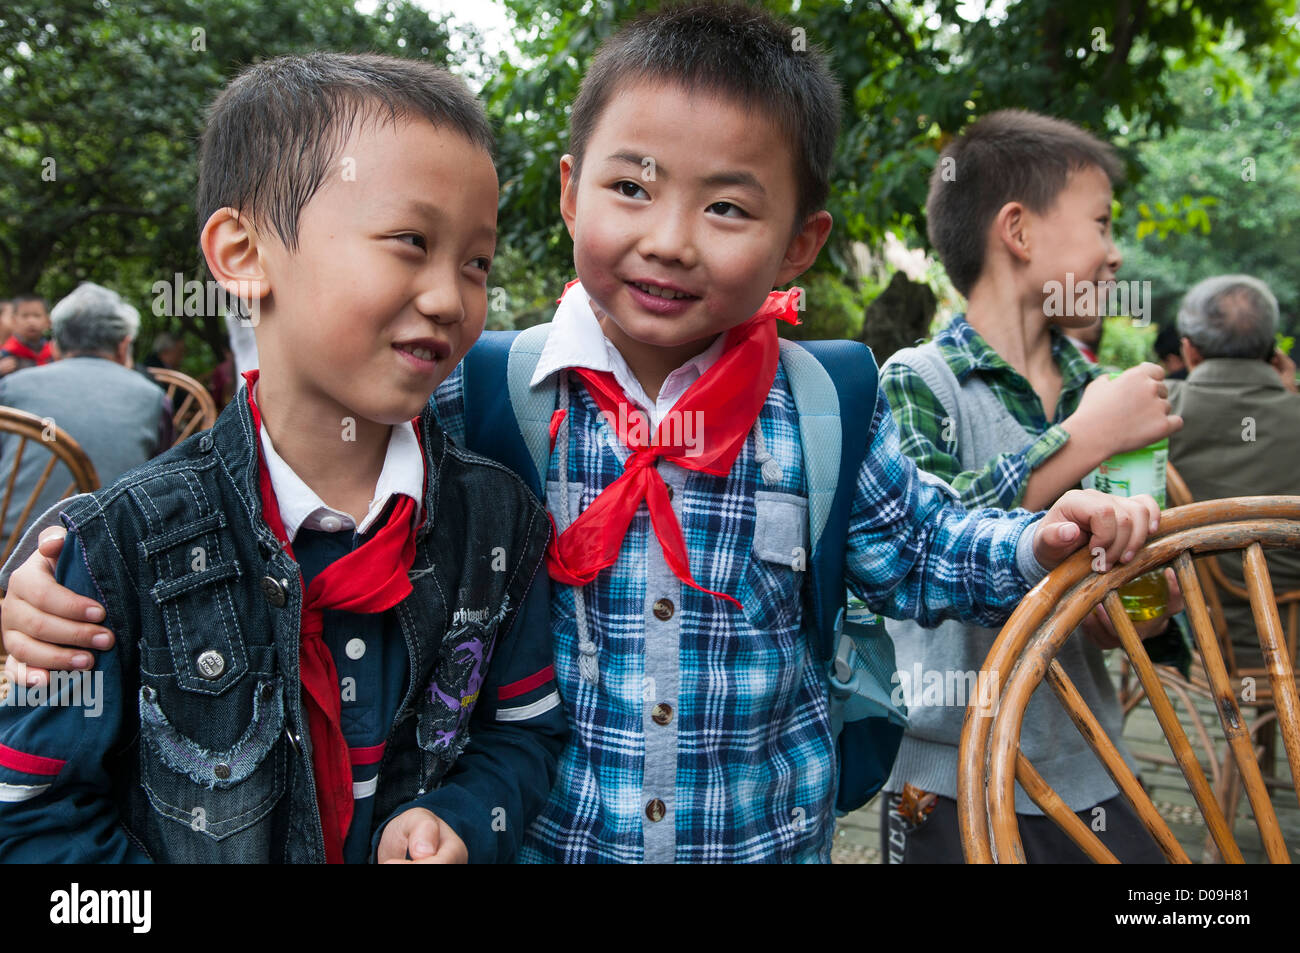 Boys are friends during school outing in Wenhua Park, Chengdu, Sichuan Province, China - Stock Image